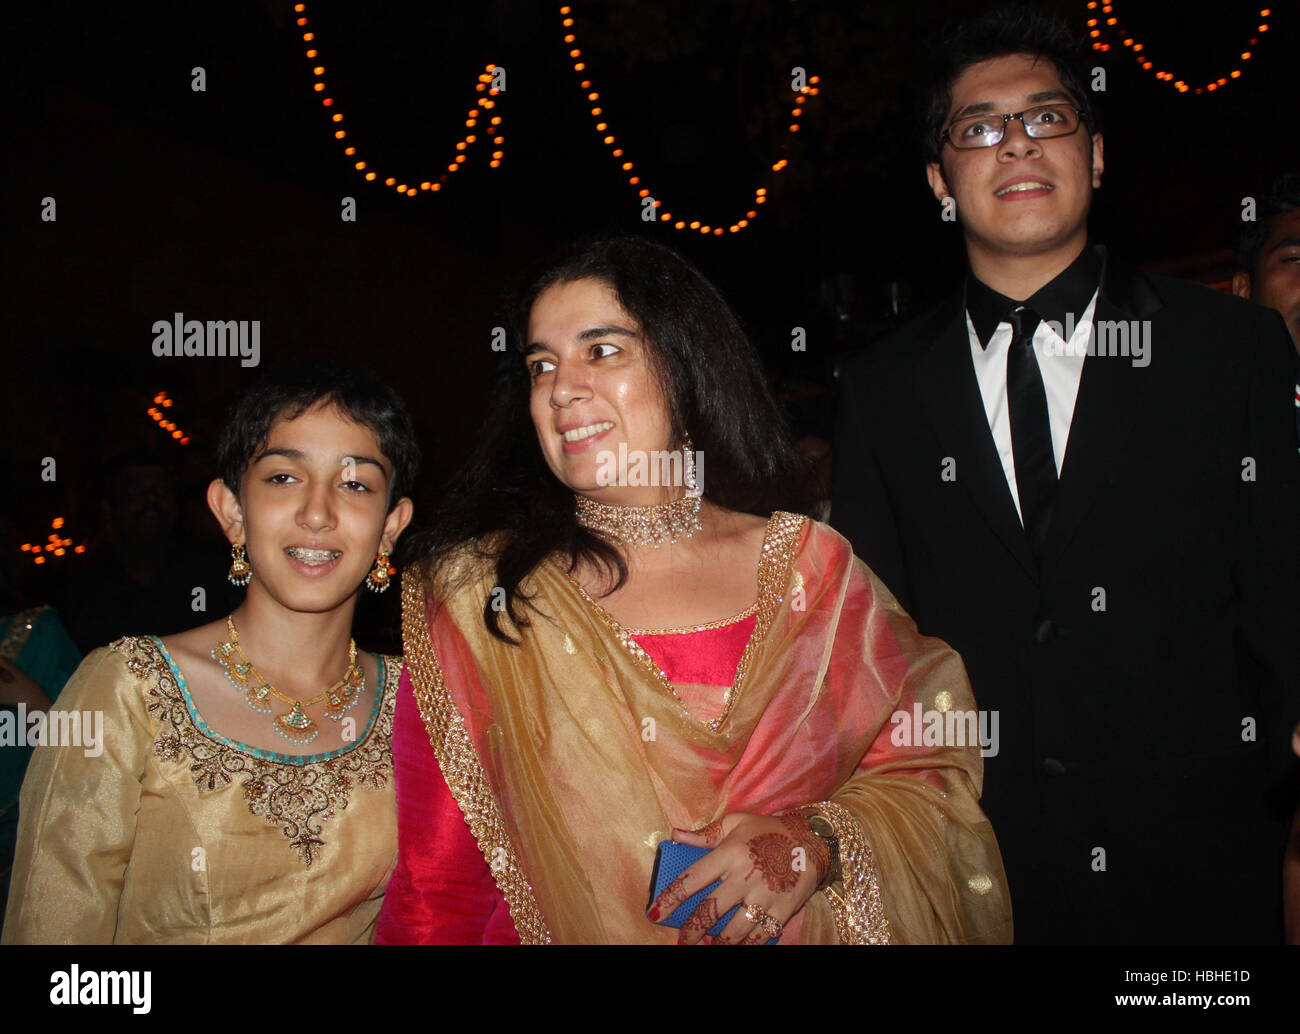 Actor Aamir Khans Ex Wife Reena Dutta Junaid Ira Wedding Ceremony Imran Khan Avantika Malik 24 Pali Hill Bungalows Mumbai